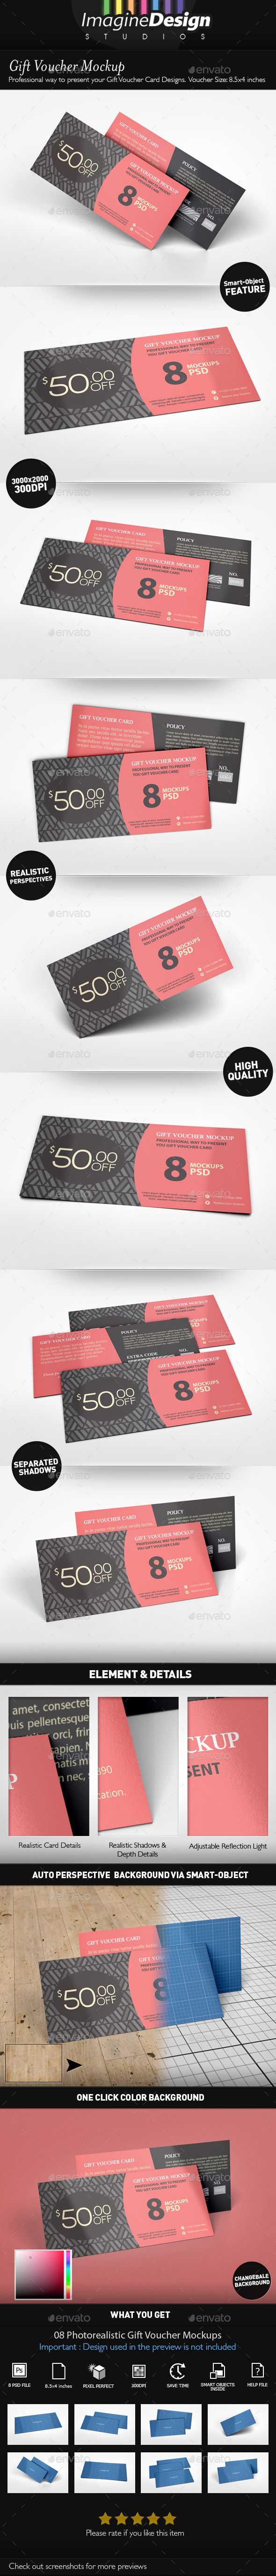 Gift Voucher Mockup. Download here: http://graphicriver.net/item/gift-voucher-mockup/16130812?ref=ksioks